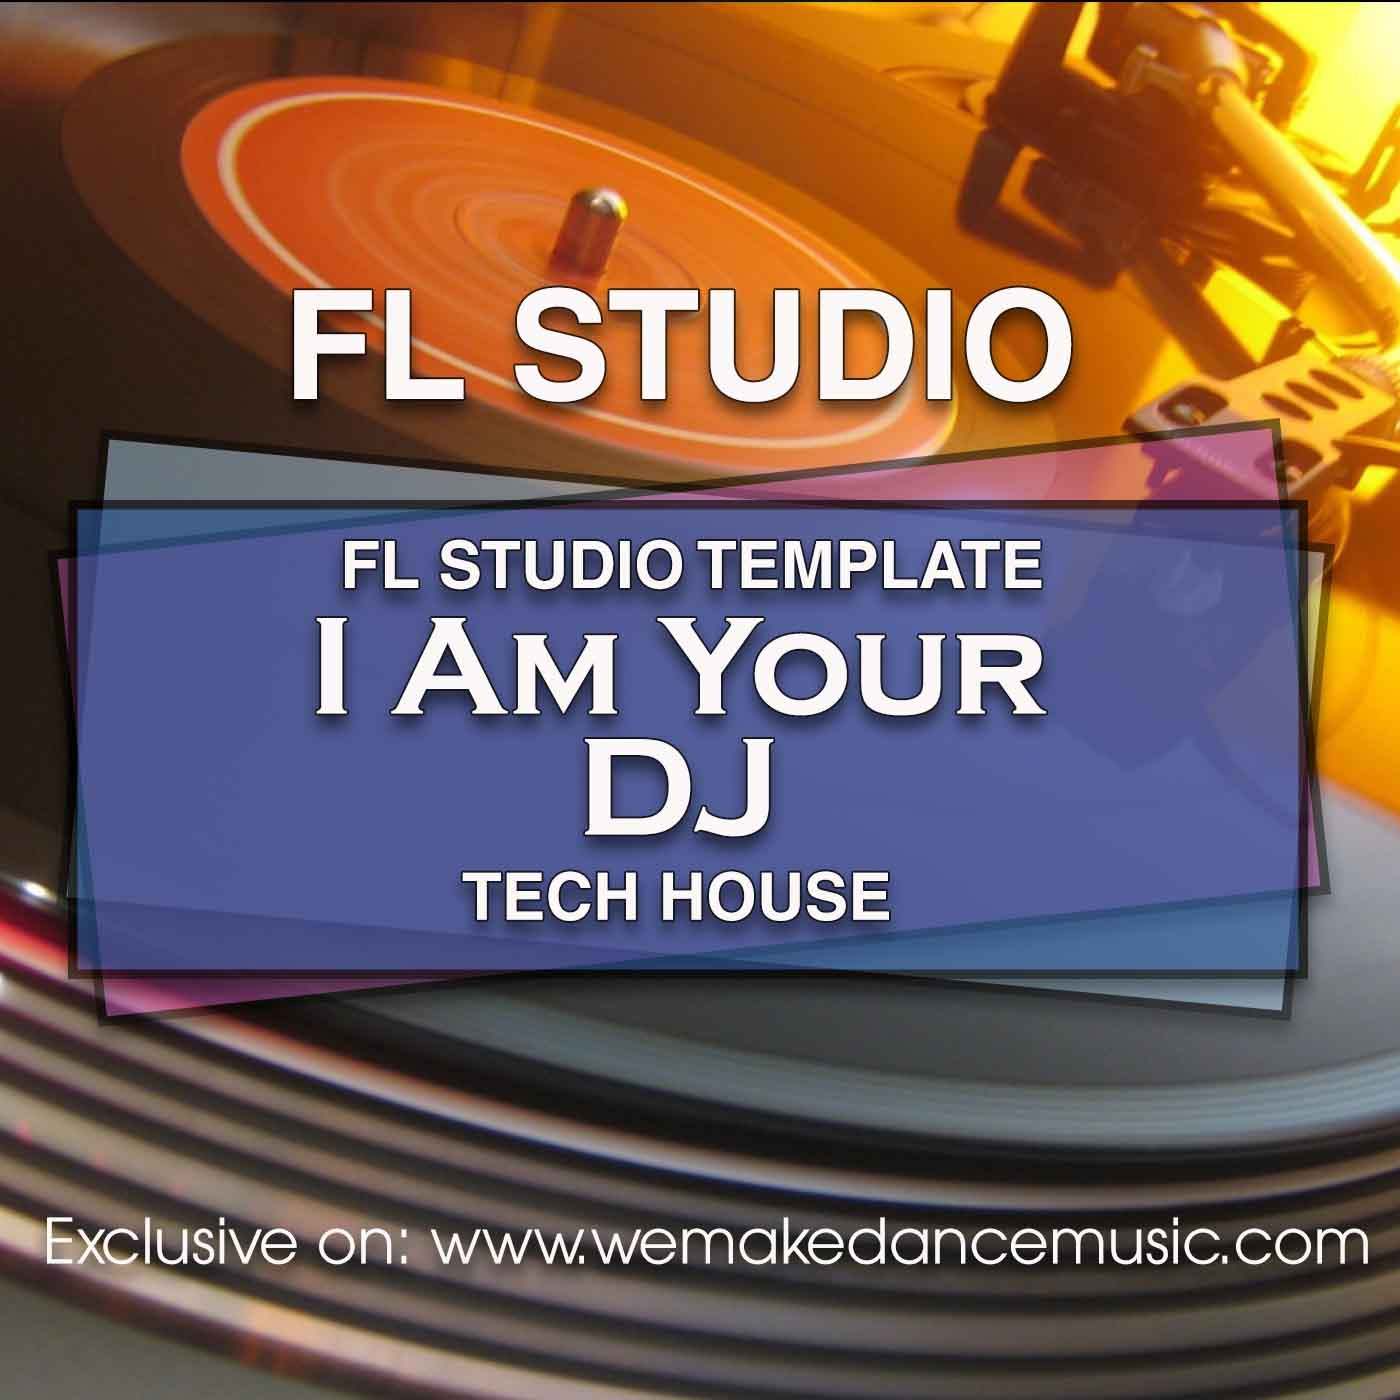 FL Studio Template I Am Your DJ